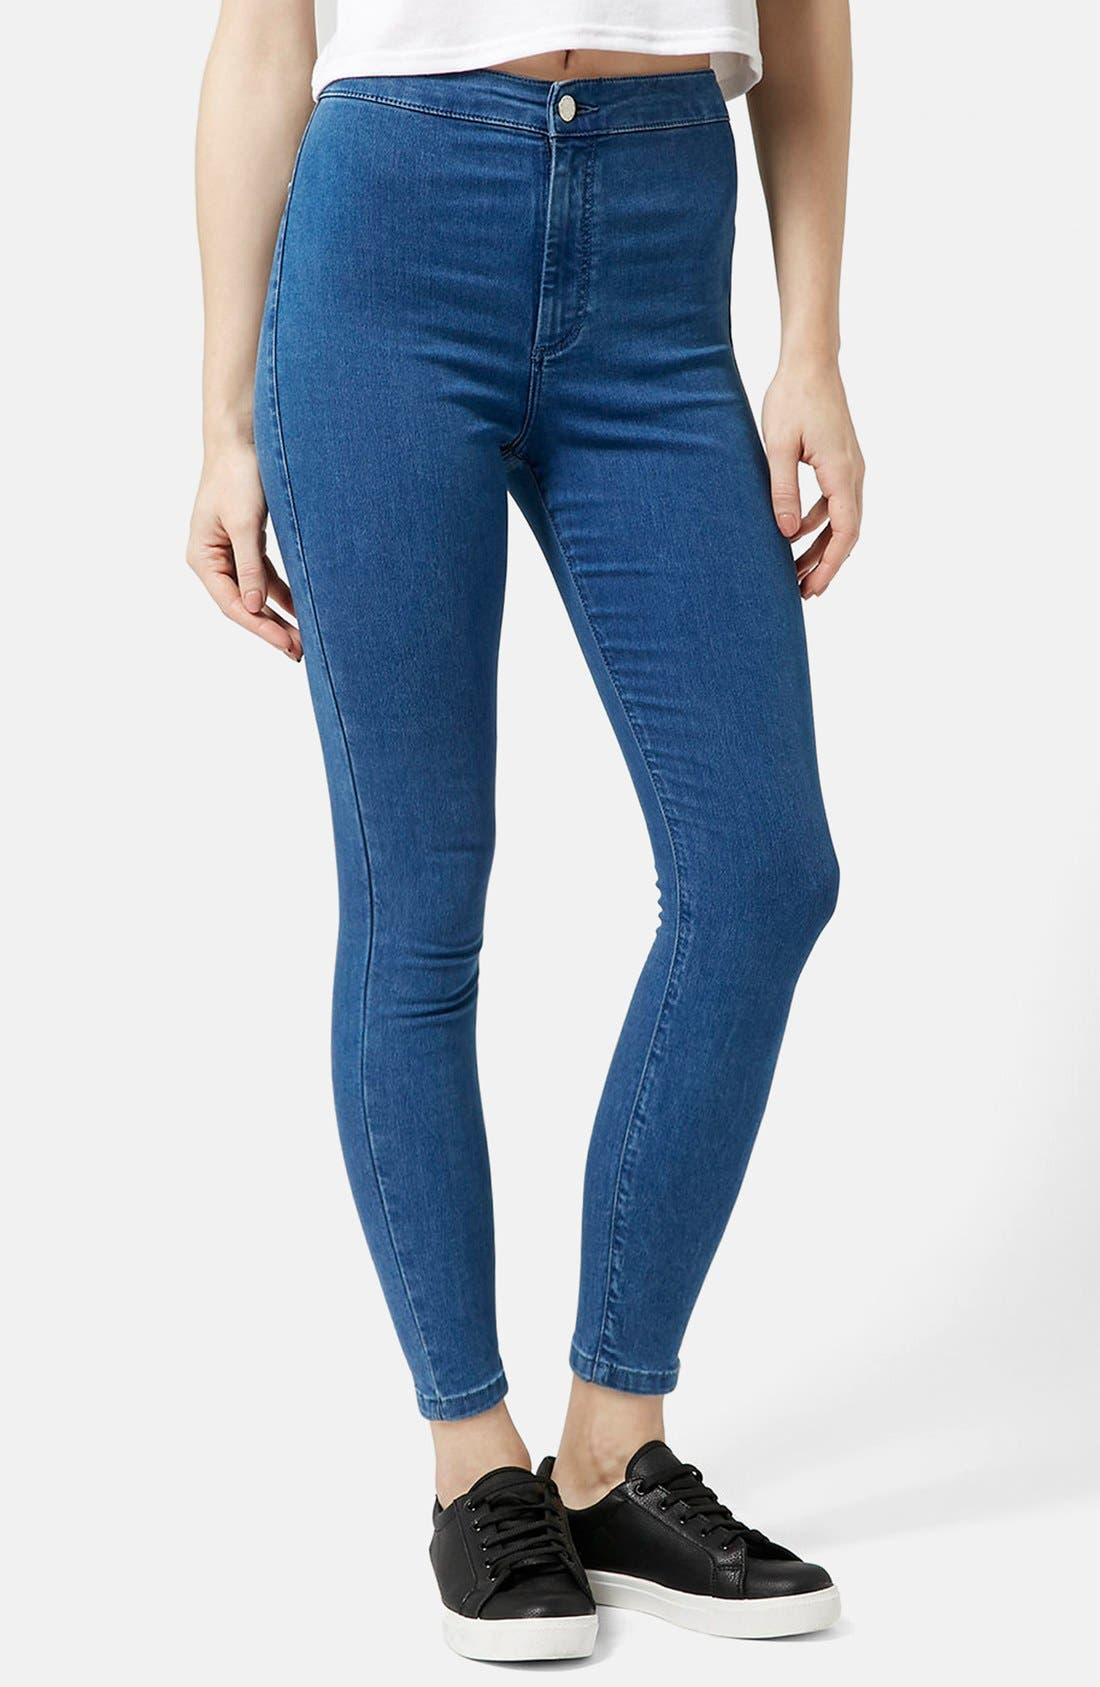 Alternate Image 1 Selected - Topshop Moto 'Joni' High Rise Super Skinny Jeans (Mid Denim) (Petite)